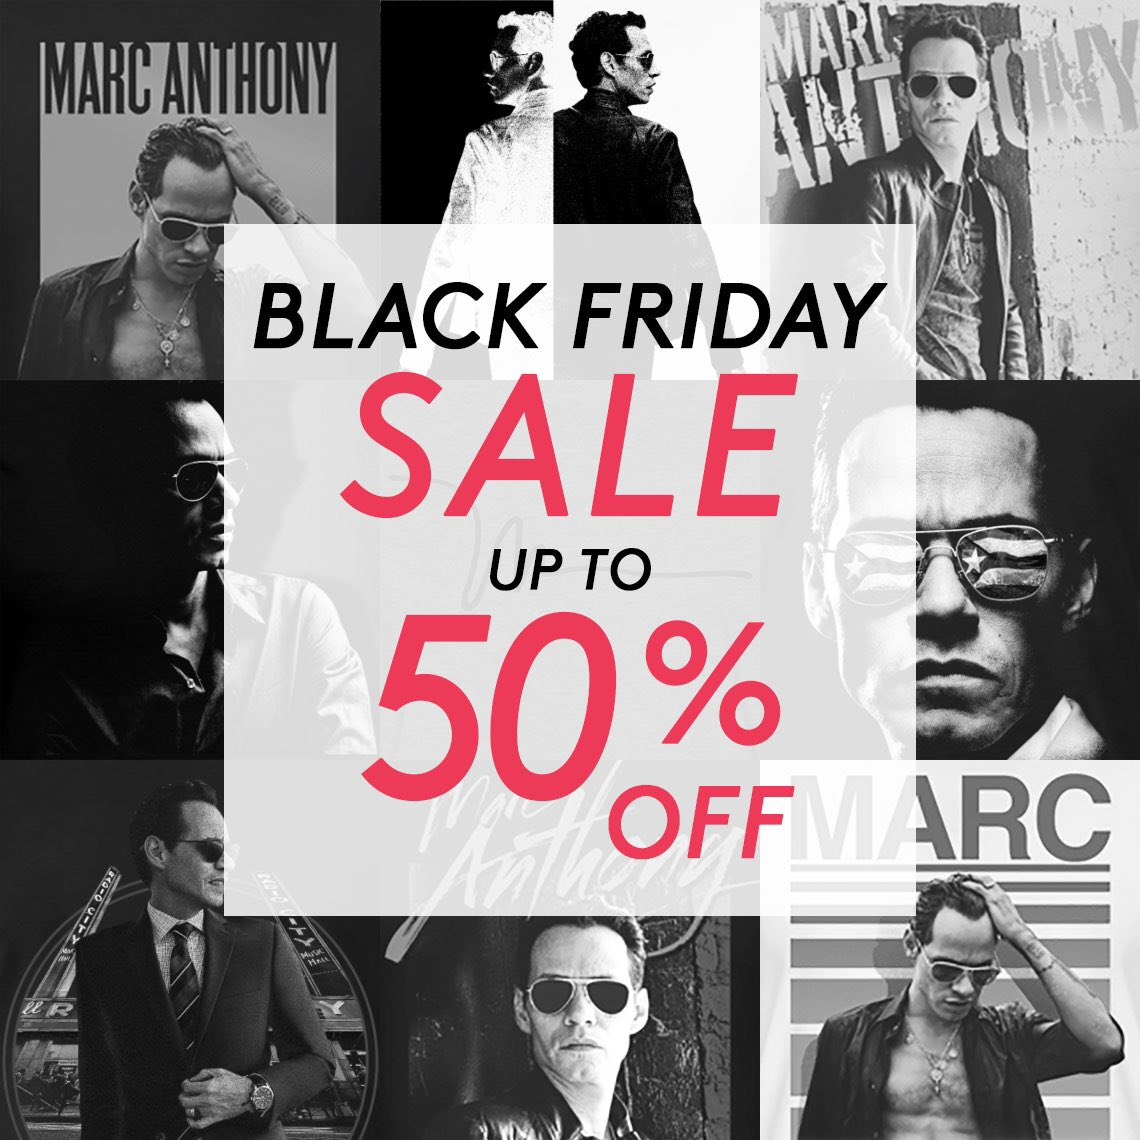 Have you shopped the Black Friday Sale yet?  https://t.co/WP3Wb3iOEO https://t.co/FKrQ02ixZ7